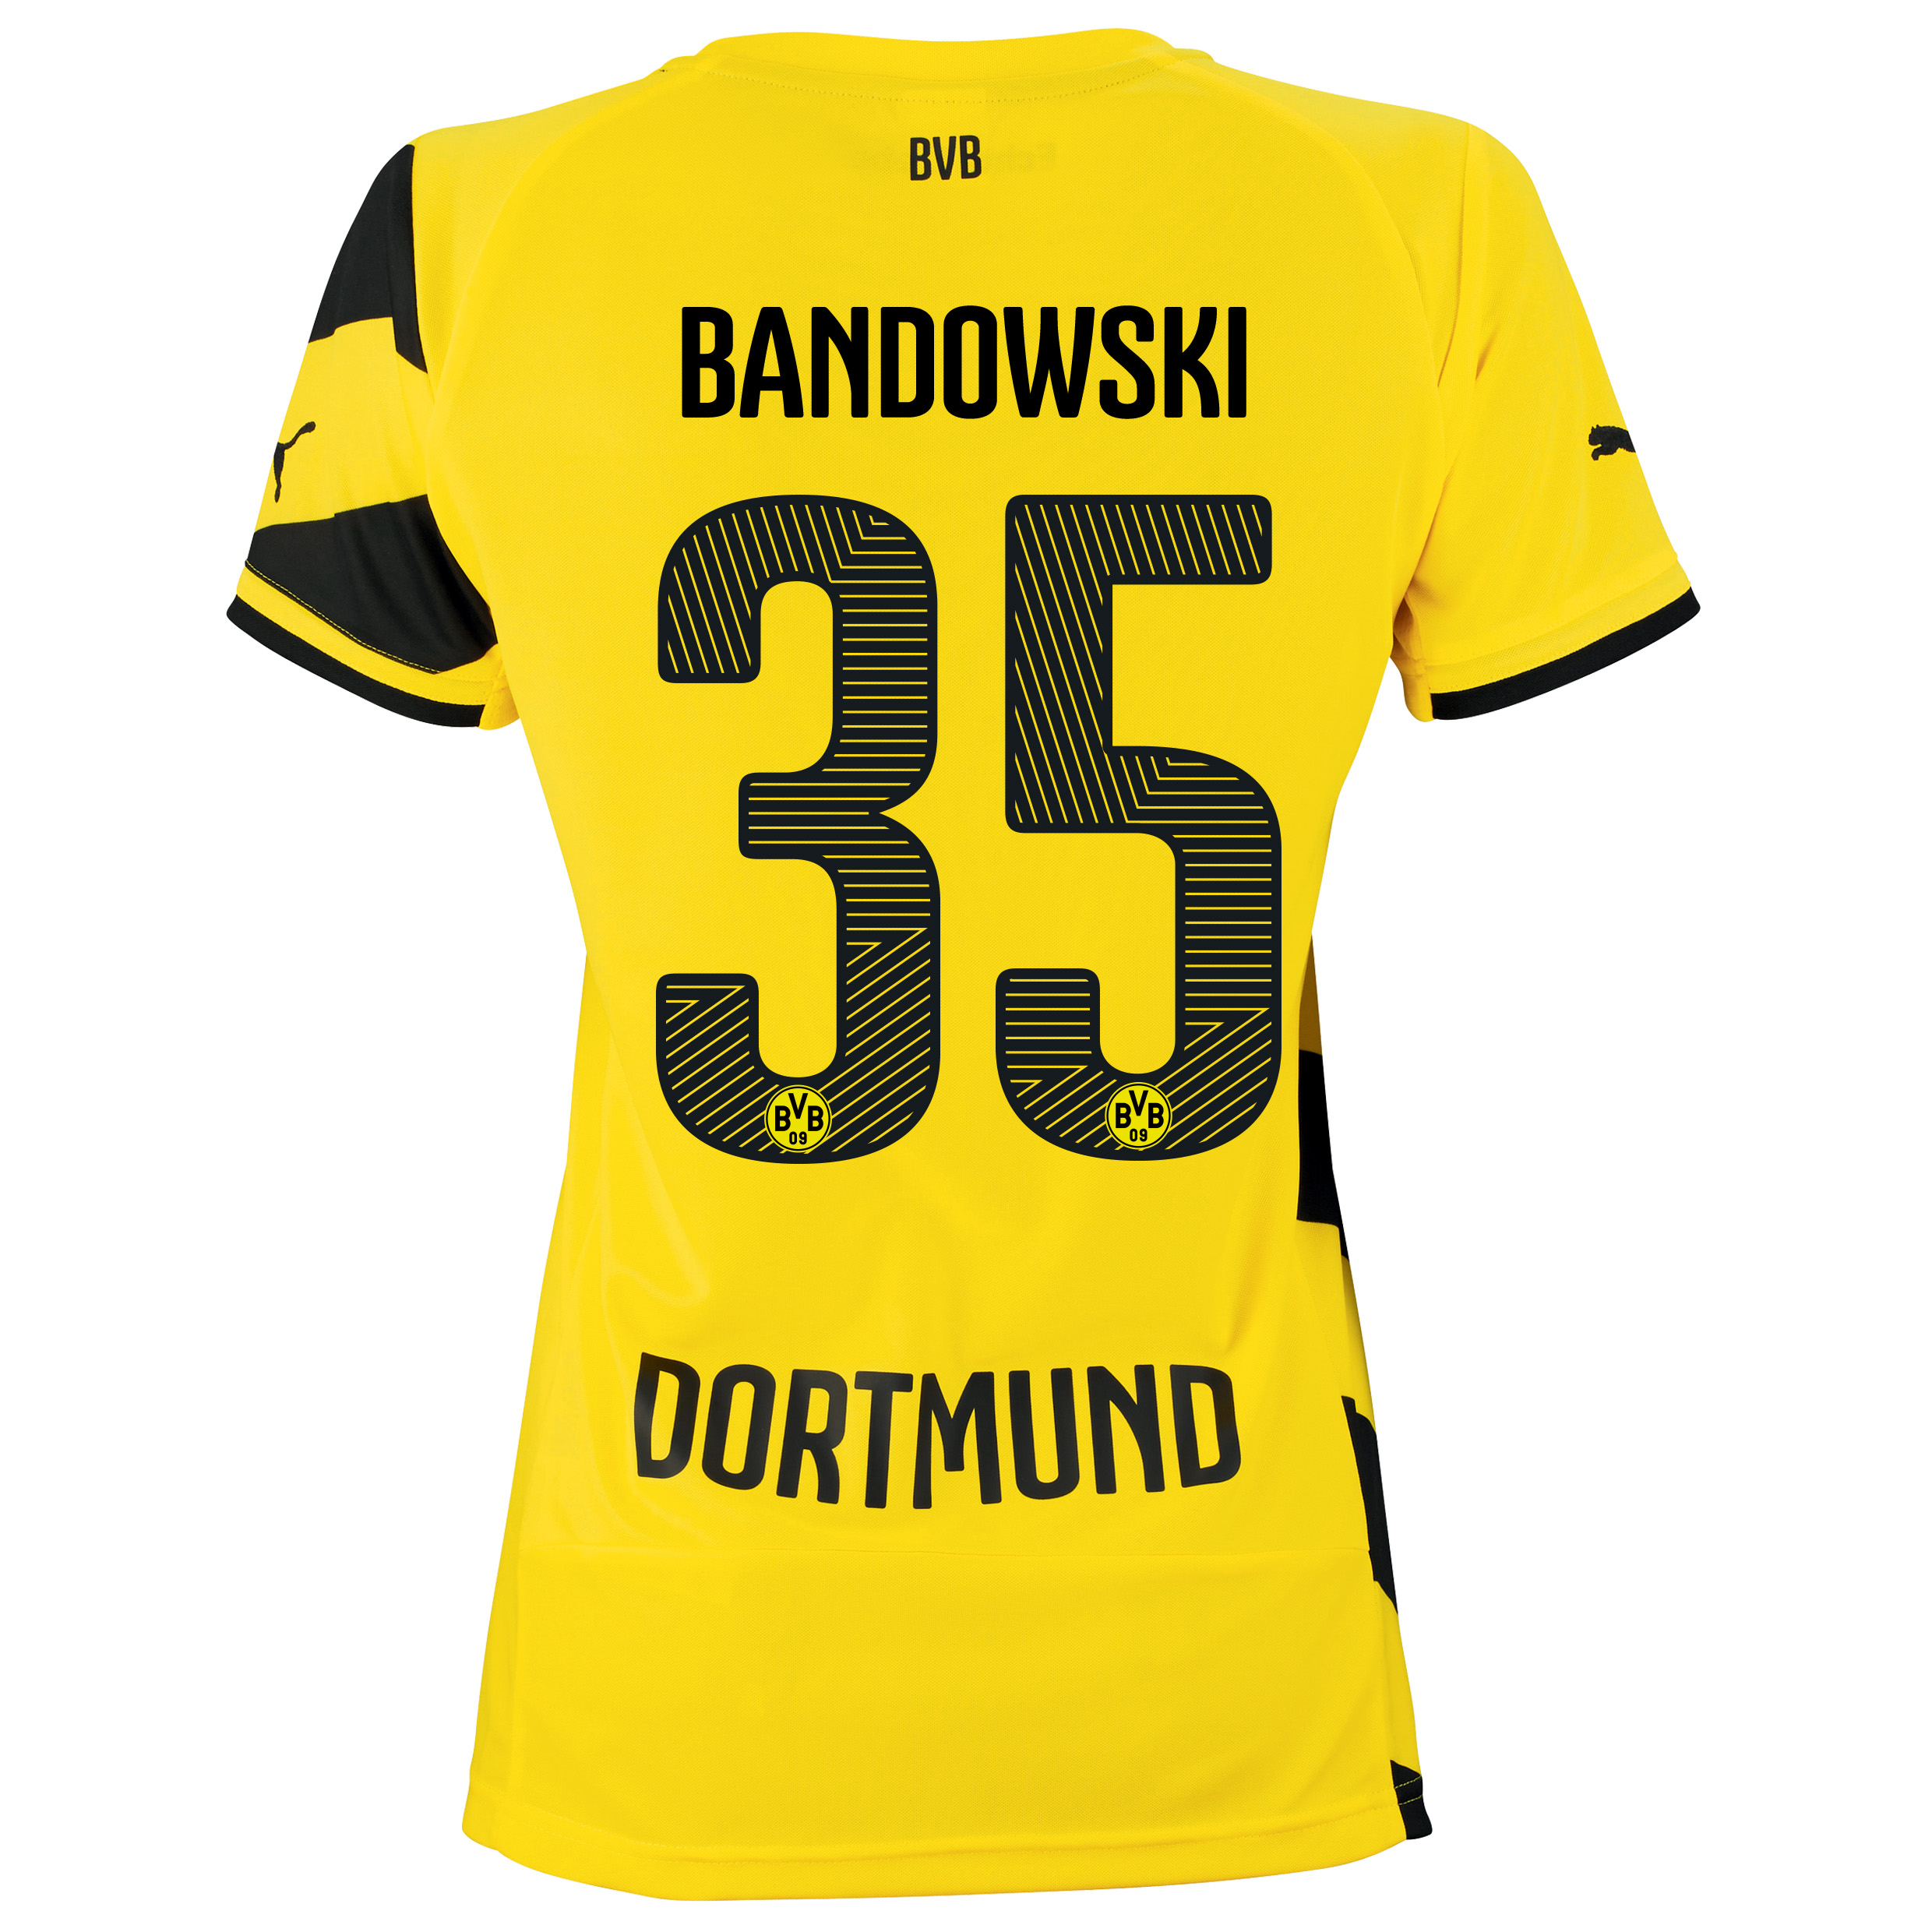 BVB Home Shirt 2014/15 - Womens with Bandowski 35 printing